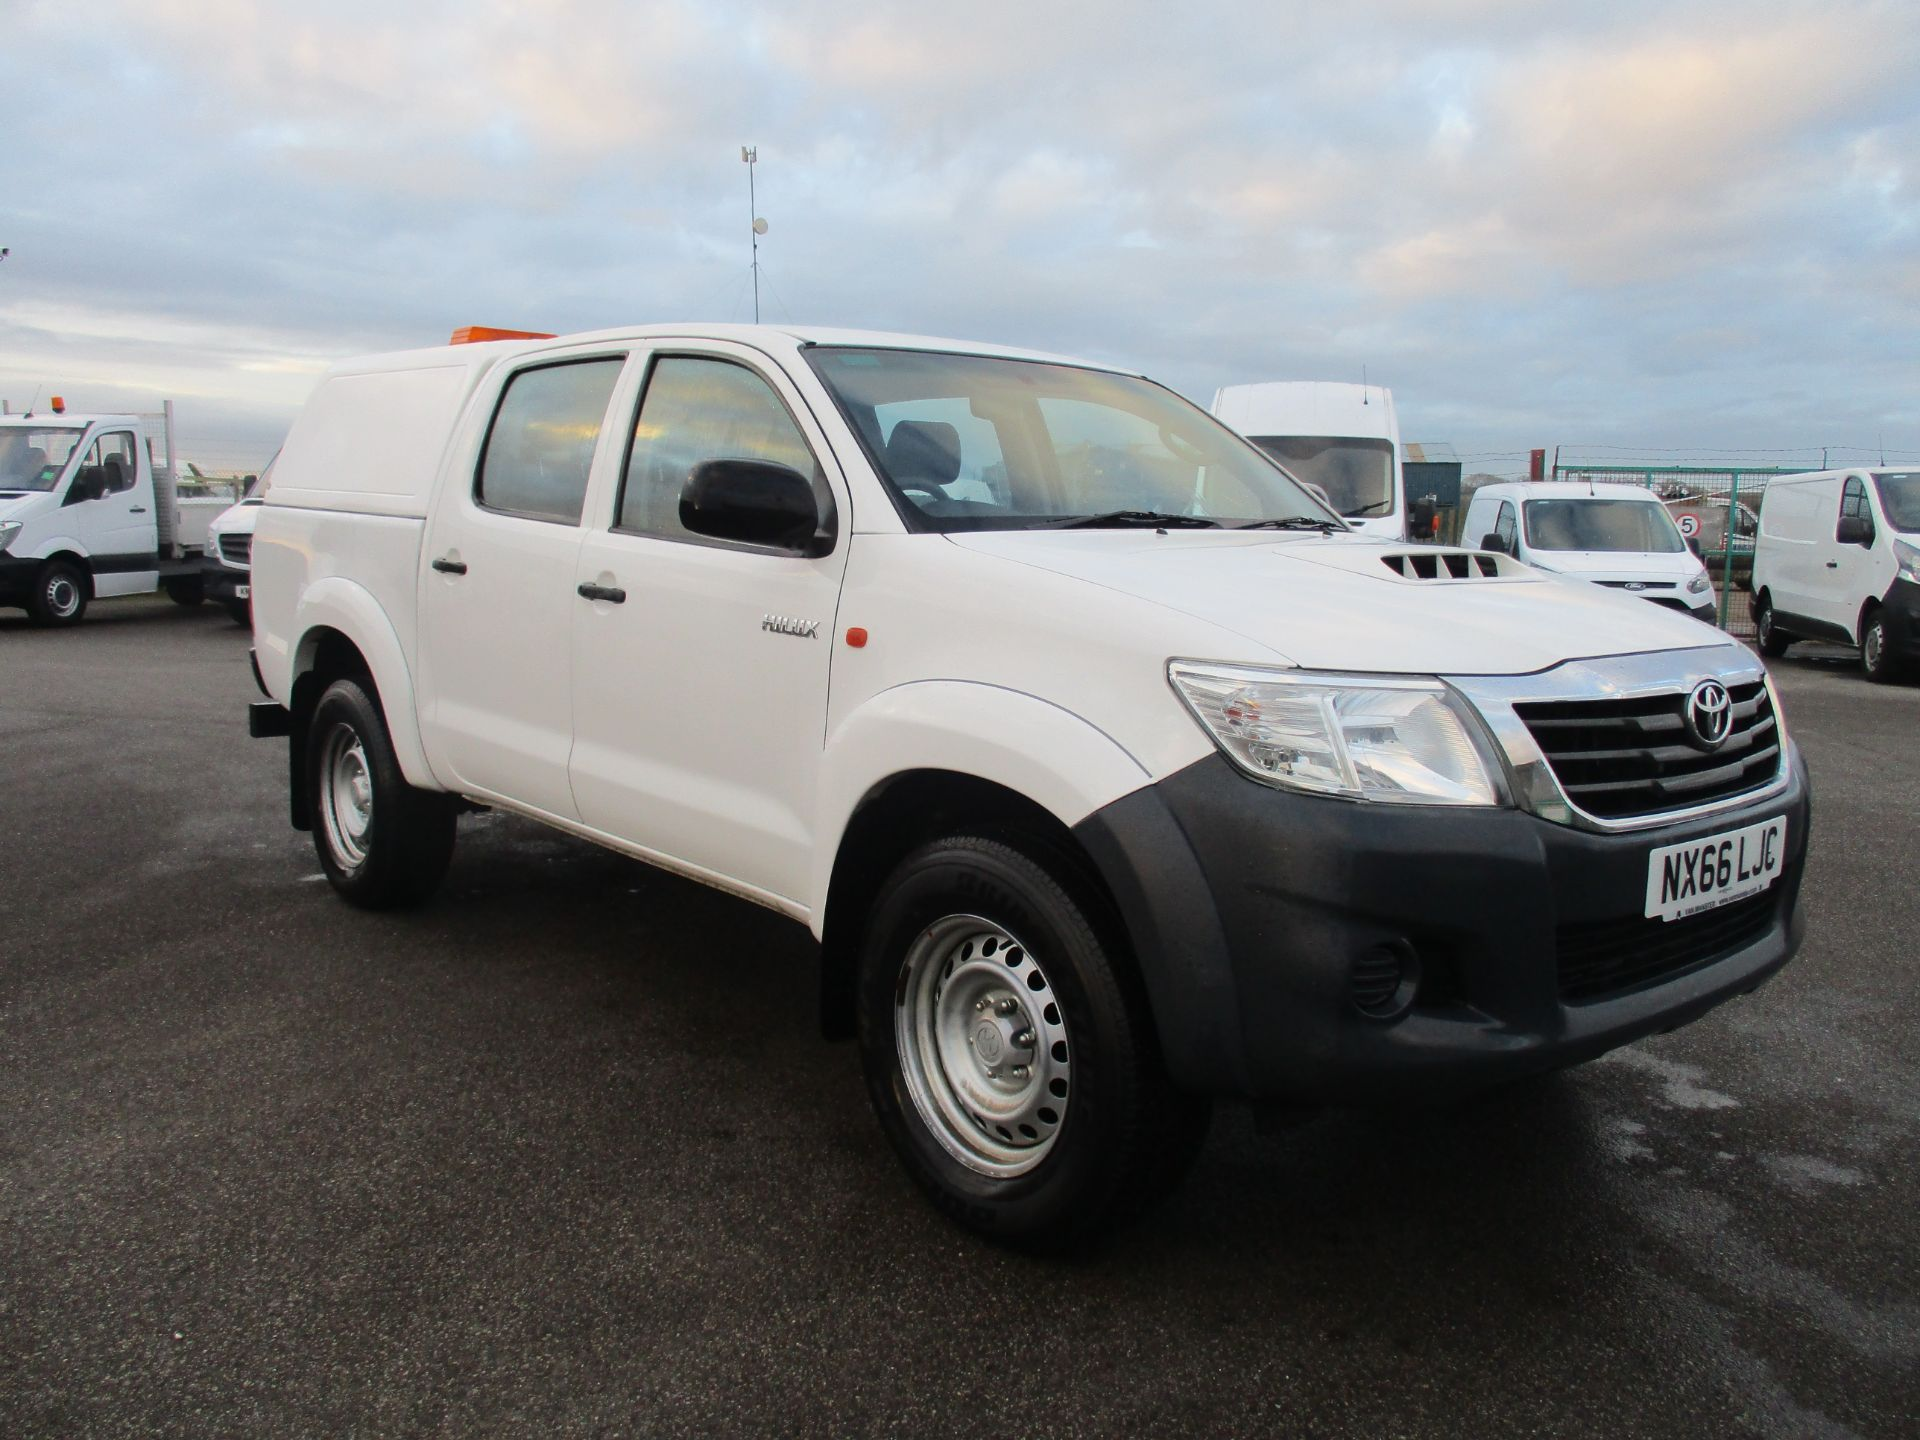 2016 Toyota Hilux DOUBLE CAB PICK UP 2.5 D-4D 4WD ACTIVE EURO 5 (NX66LJC)